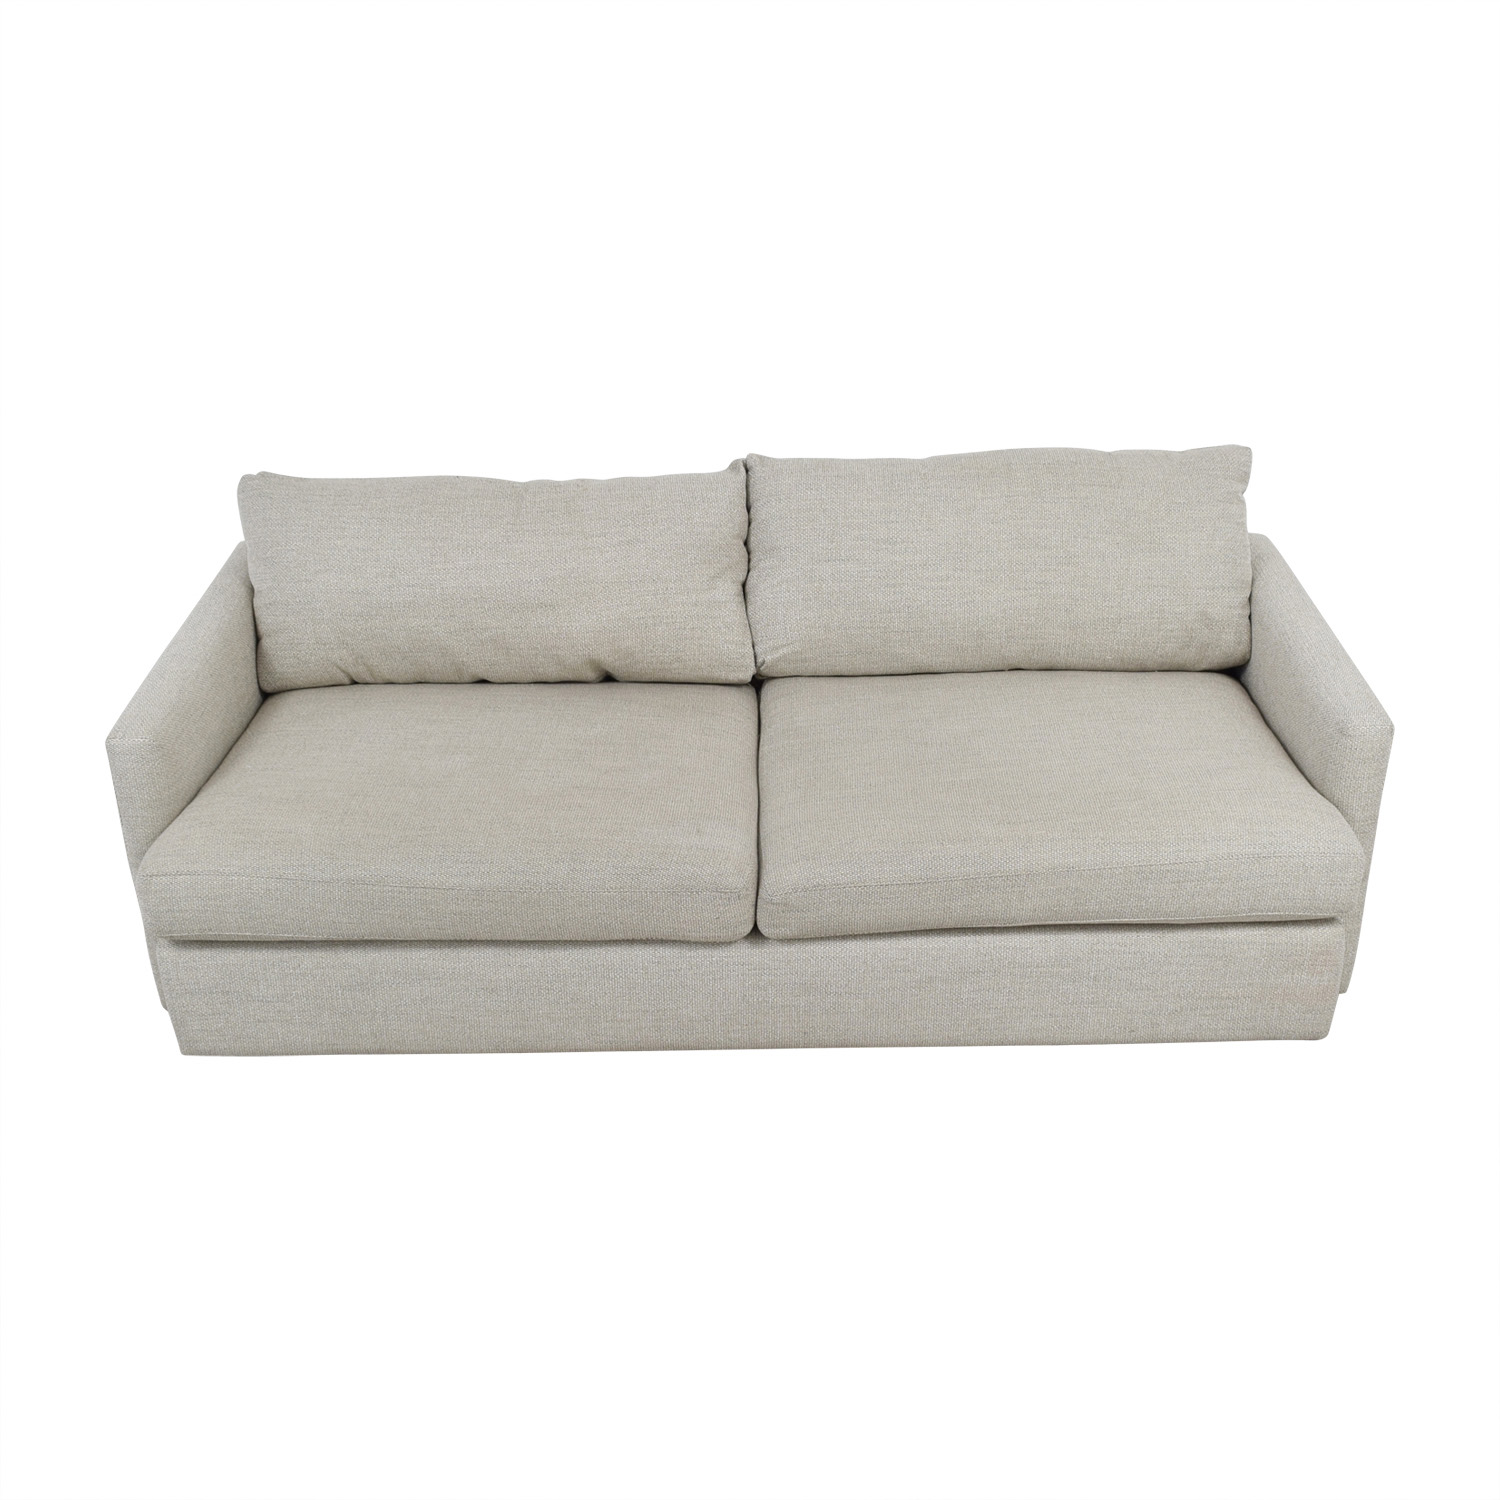 buy Crate & Barrel Lounge II Cement Grey Two Cushion Sofa Crate & Barrel